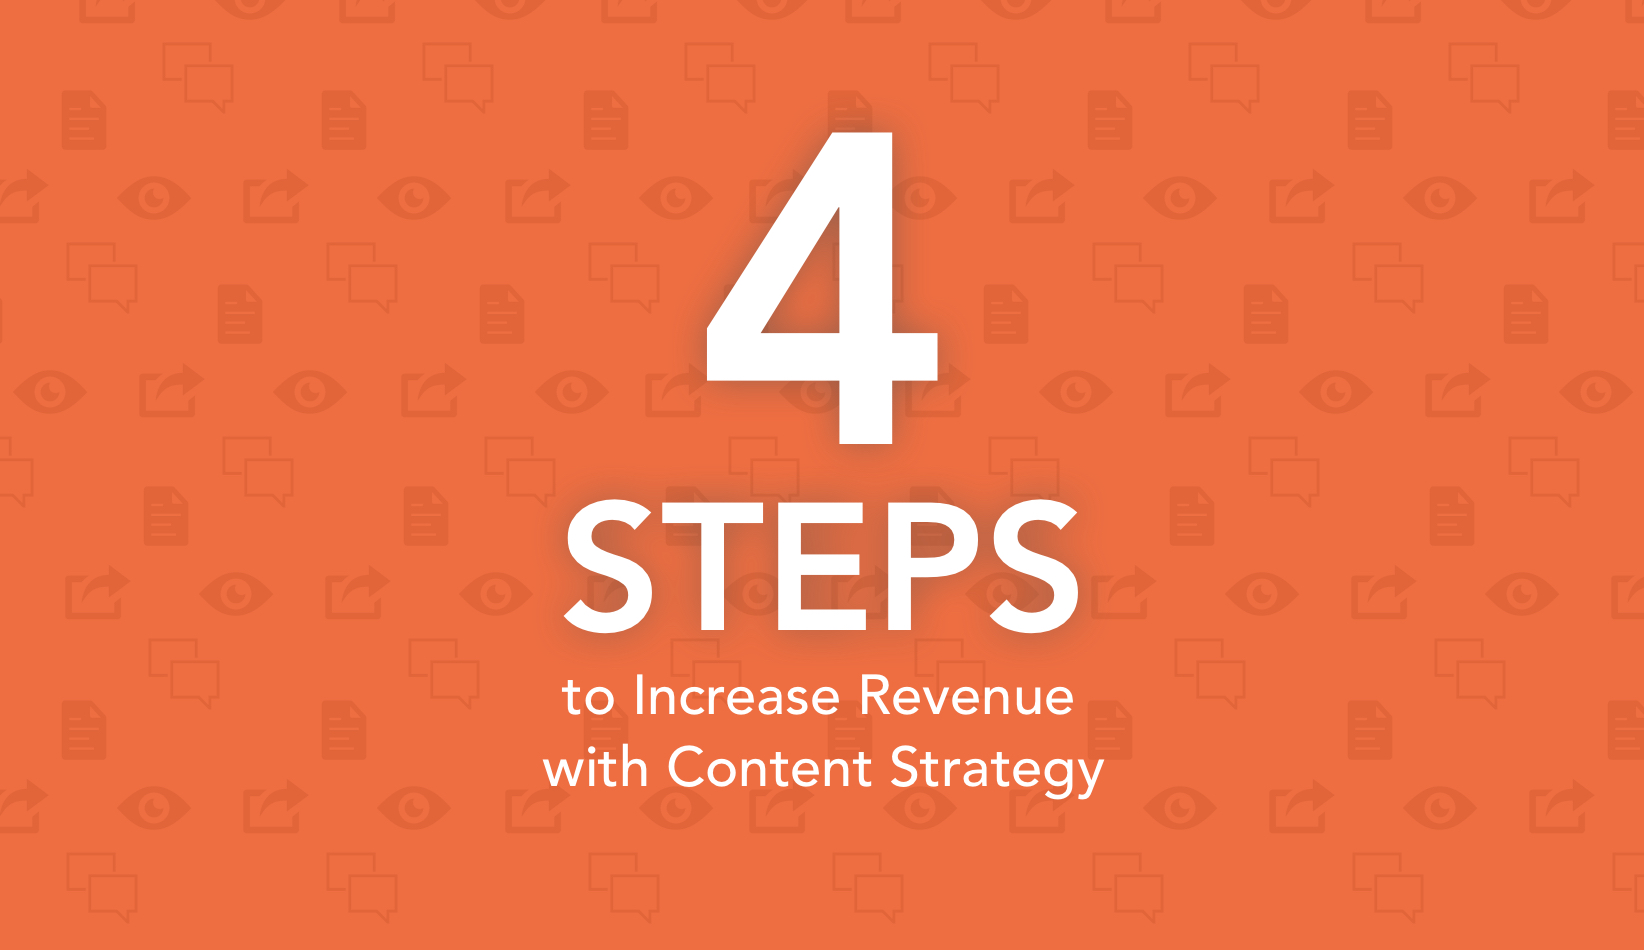 4 steps to increase revenue with content strategy@2x